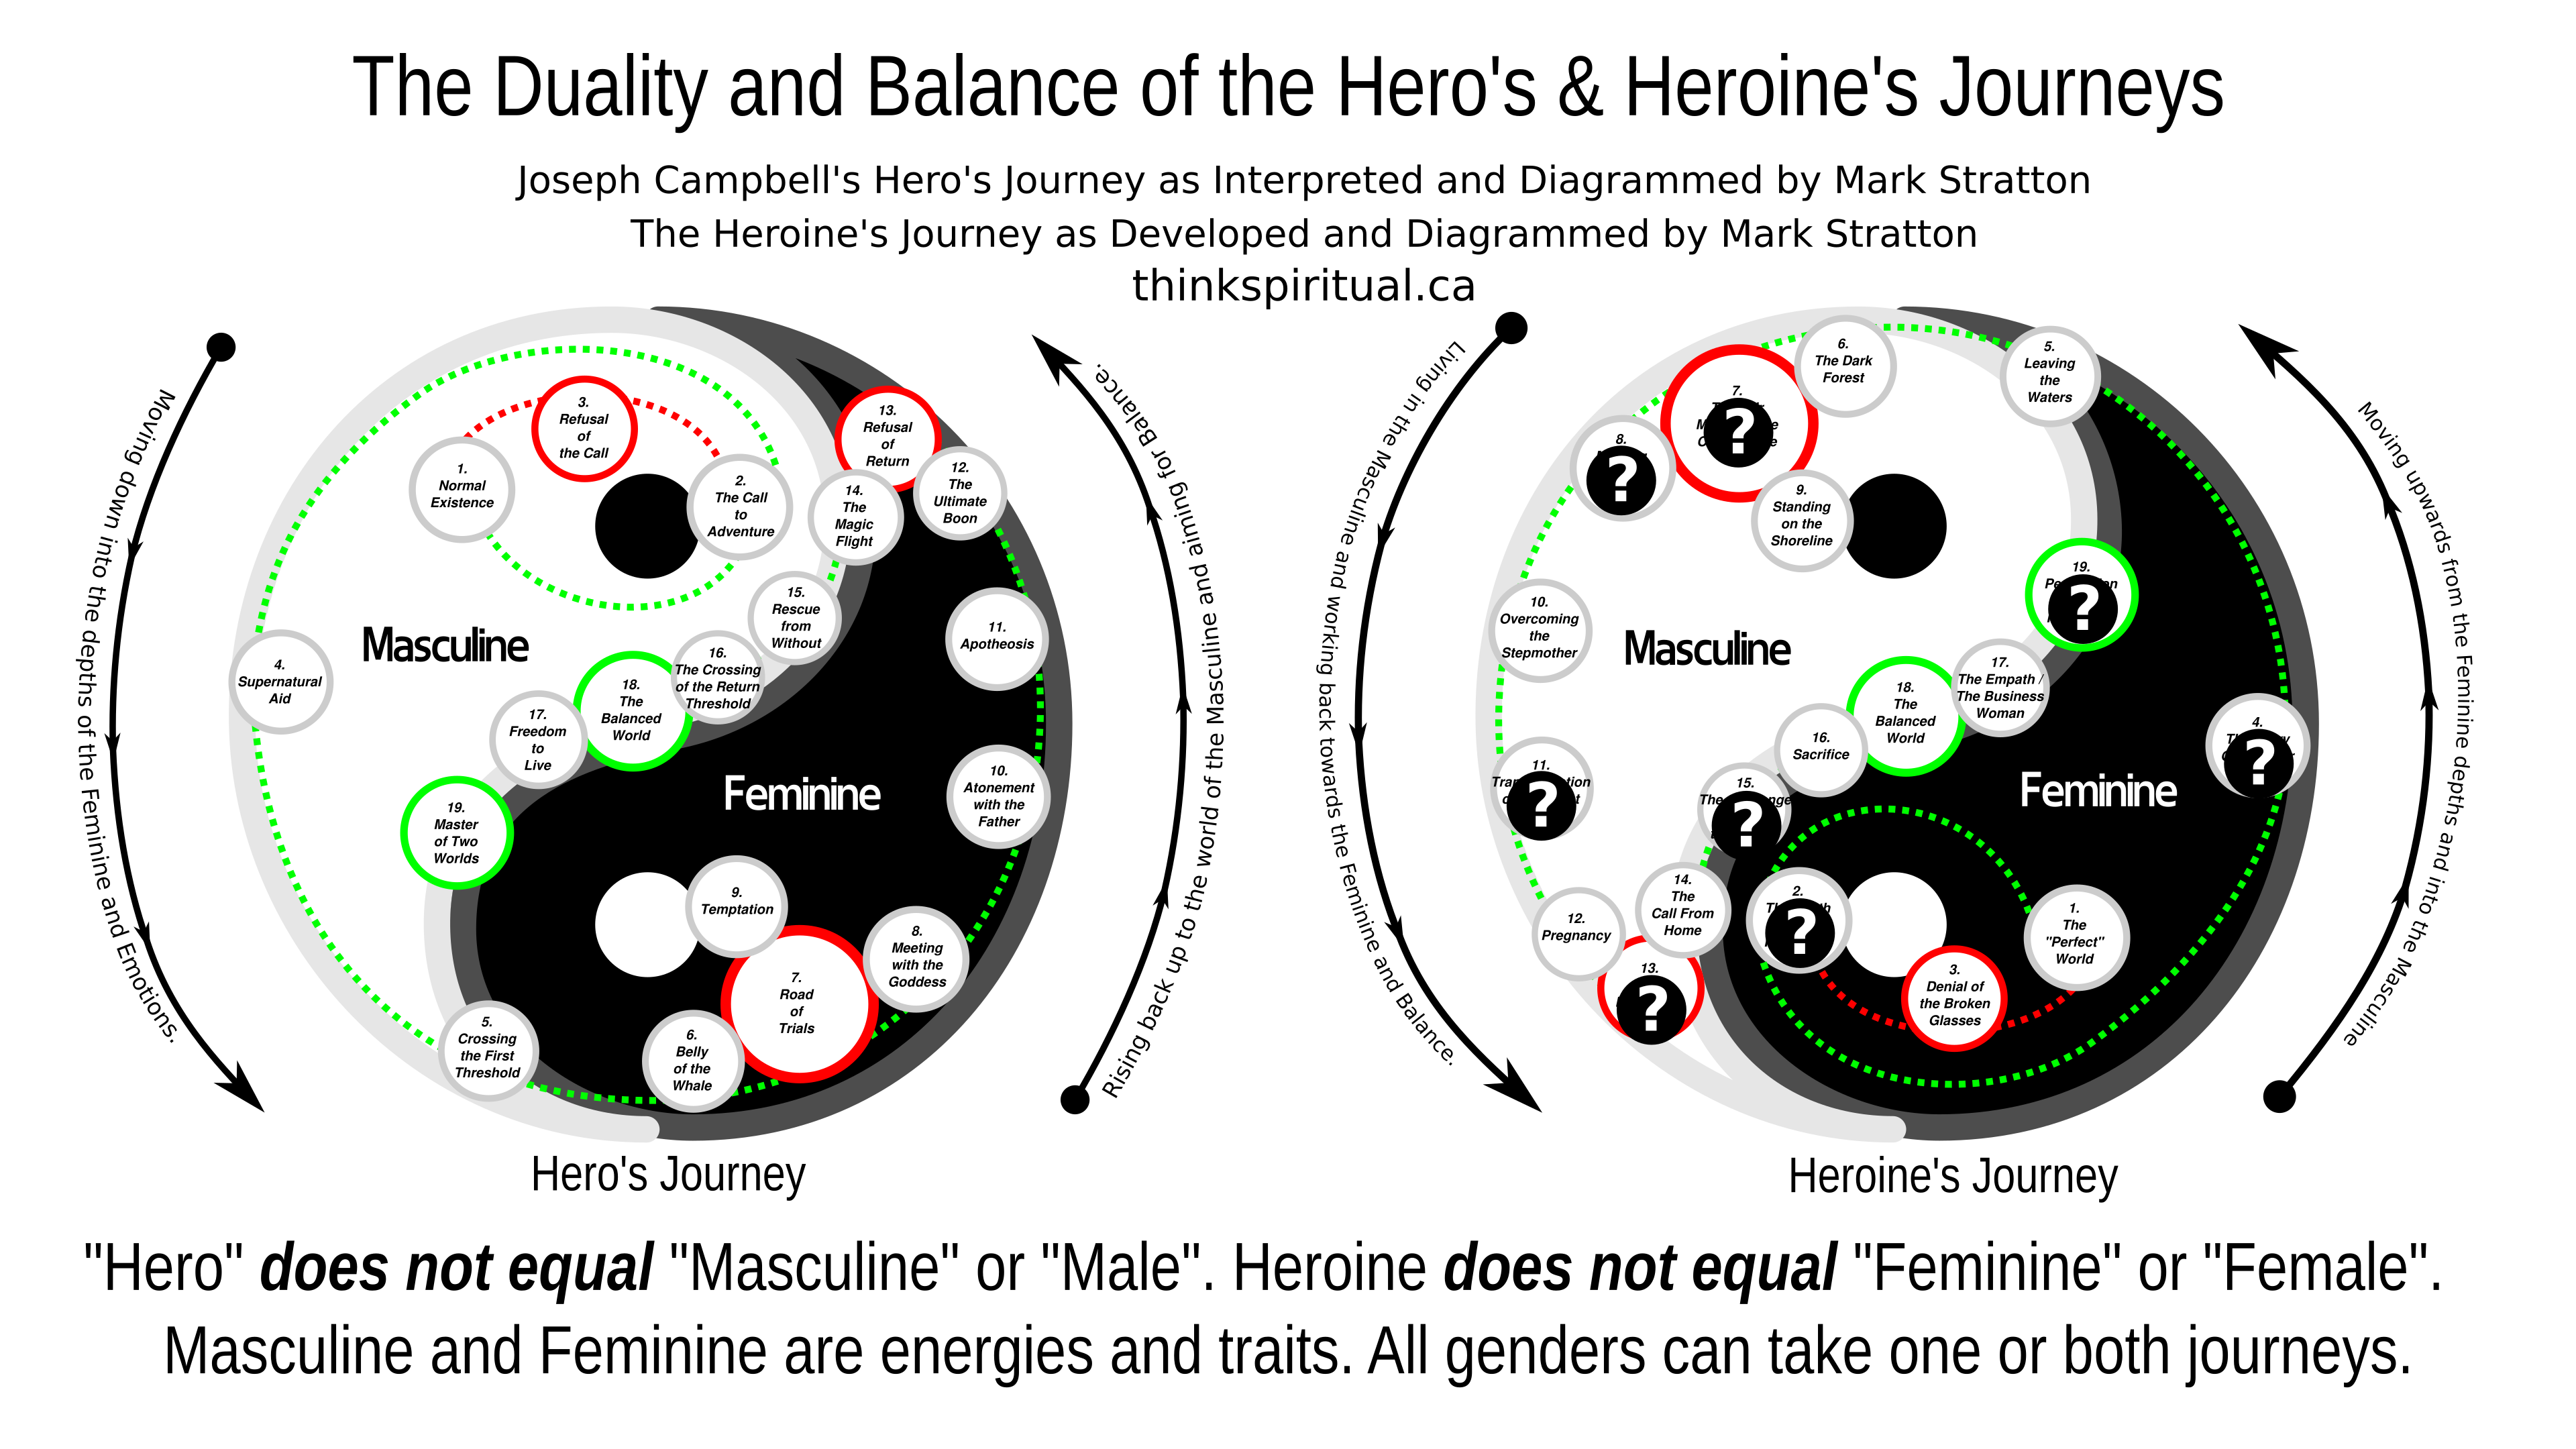 The Hero's and Heroine's Journeys